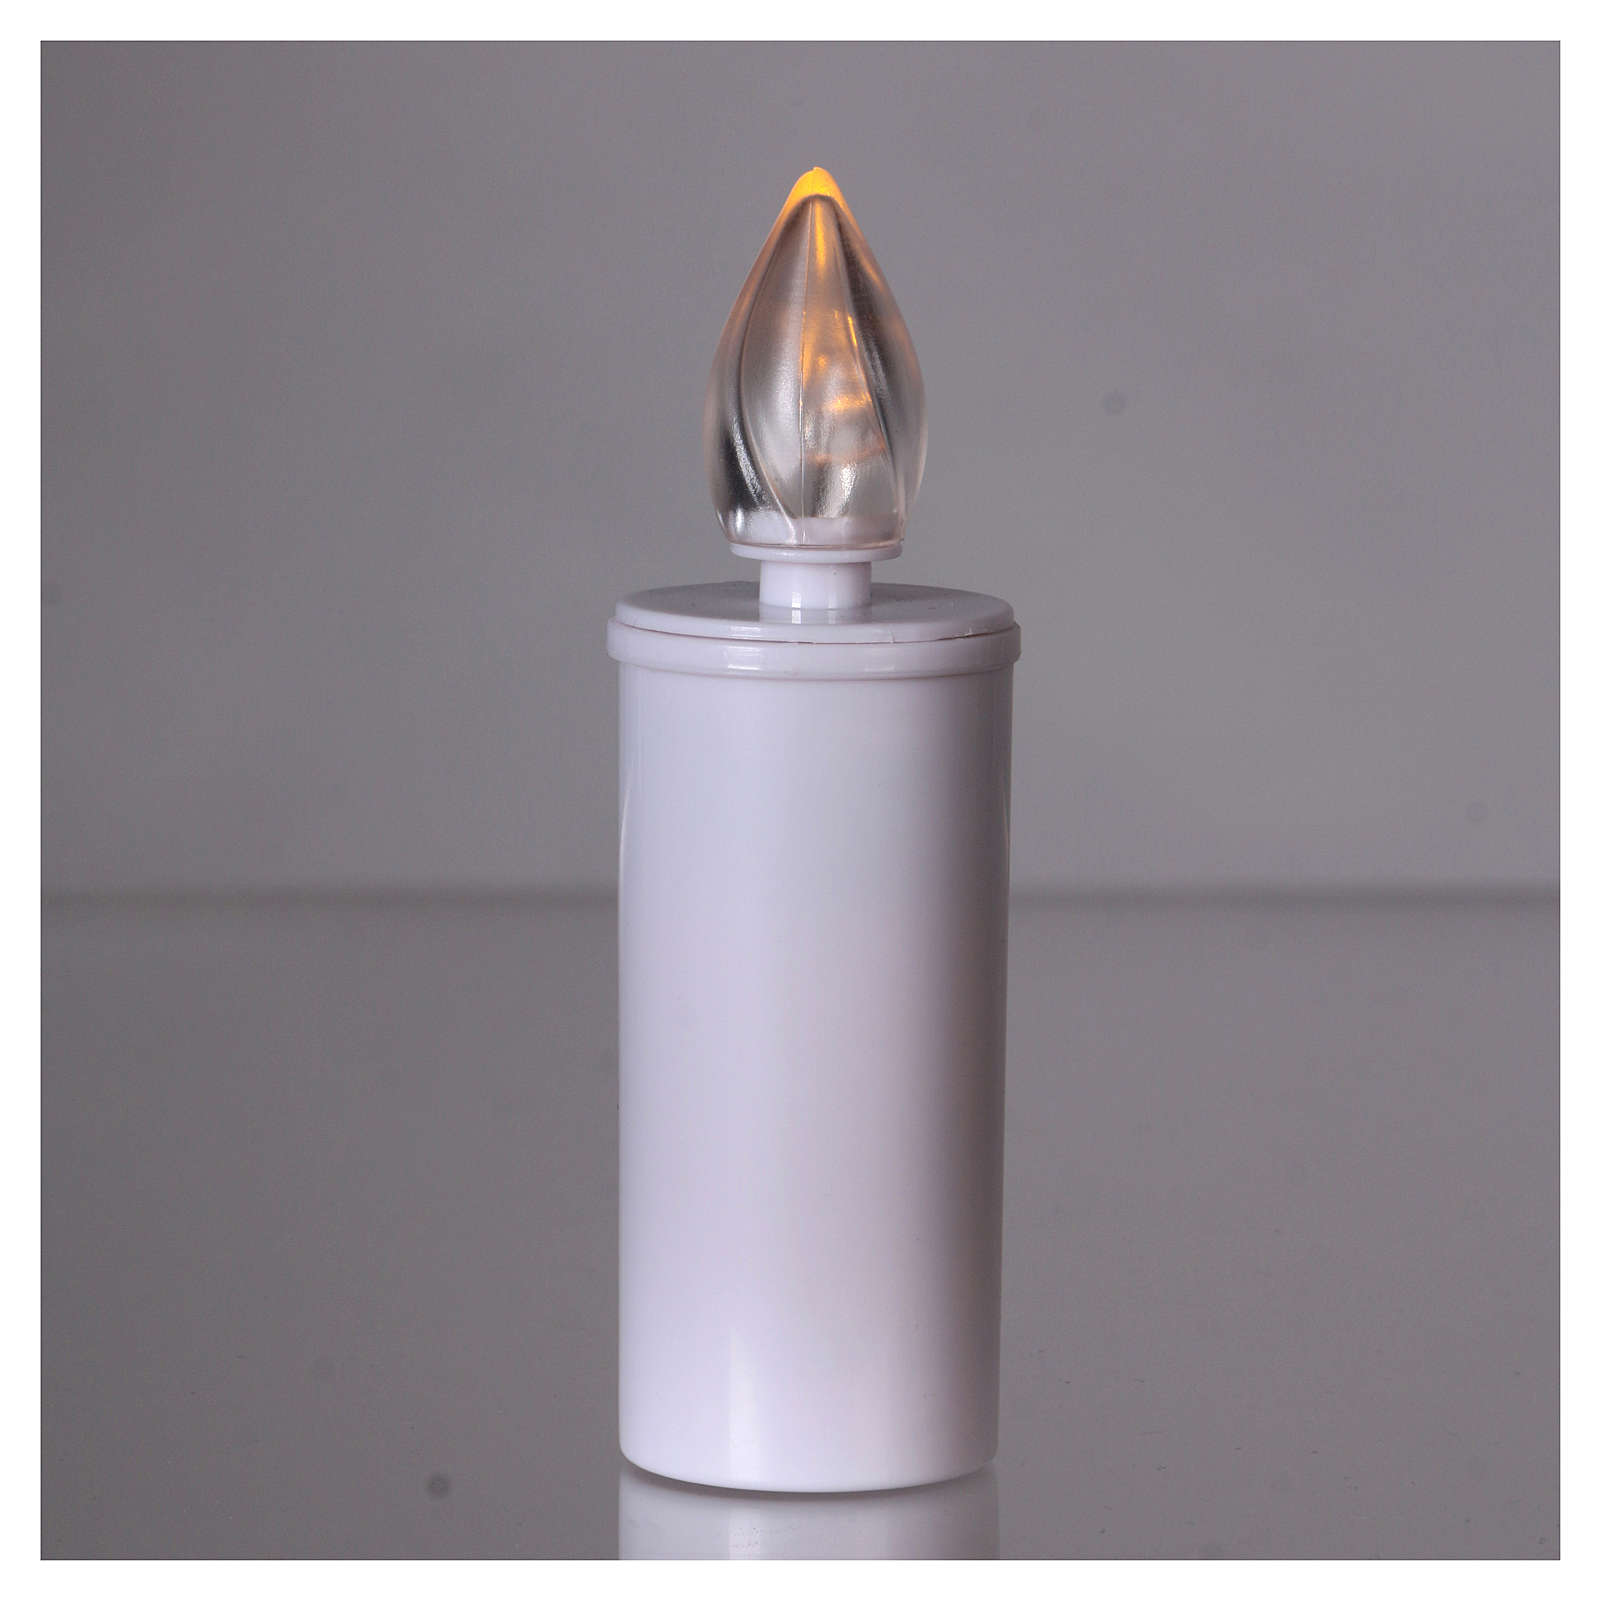 Lumada votive candle with yellow intermittent light, disposable 3